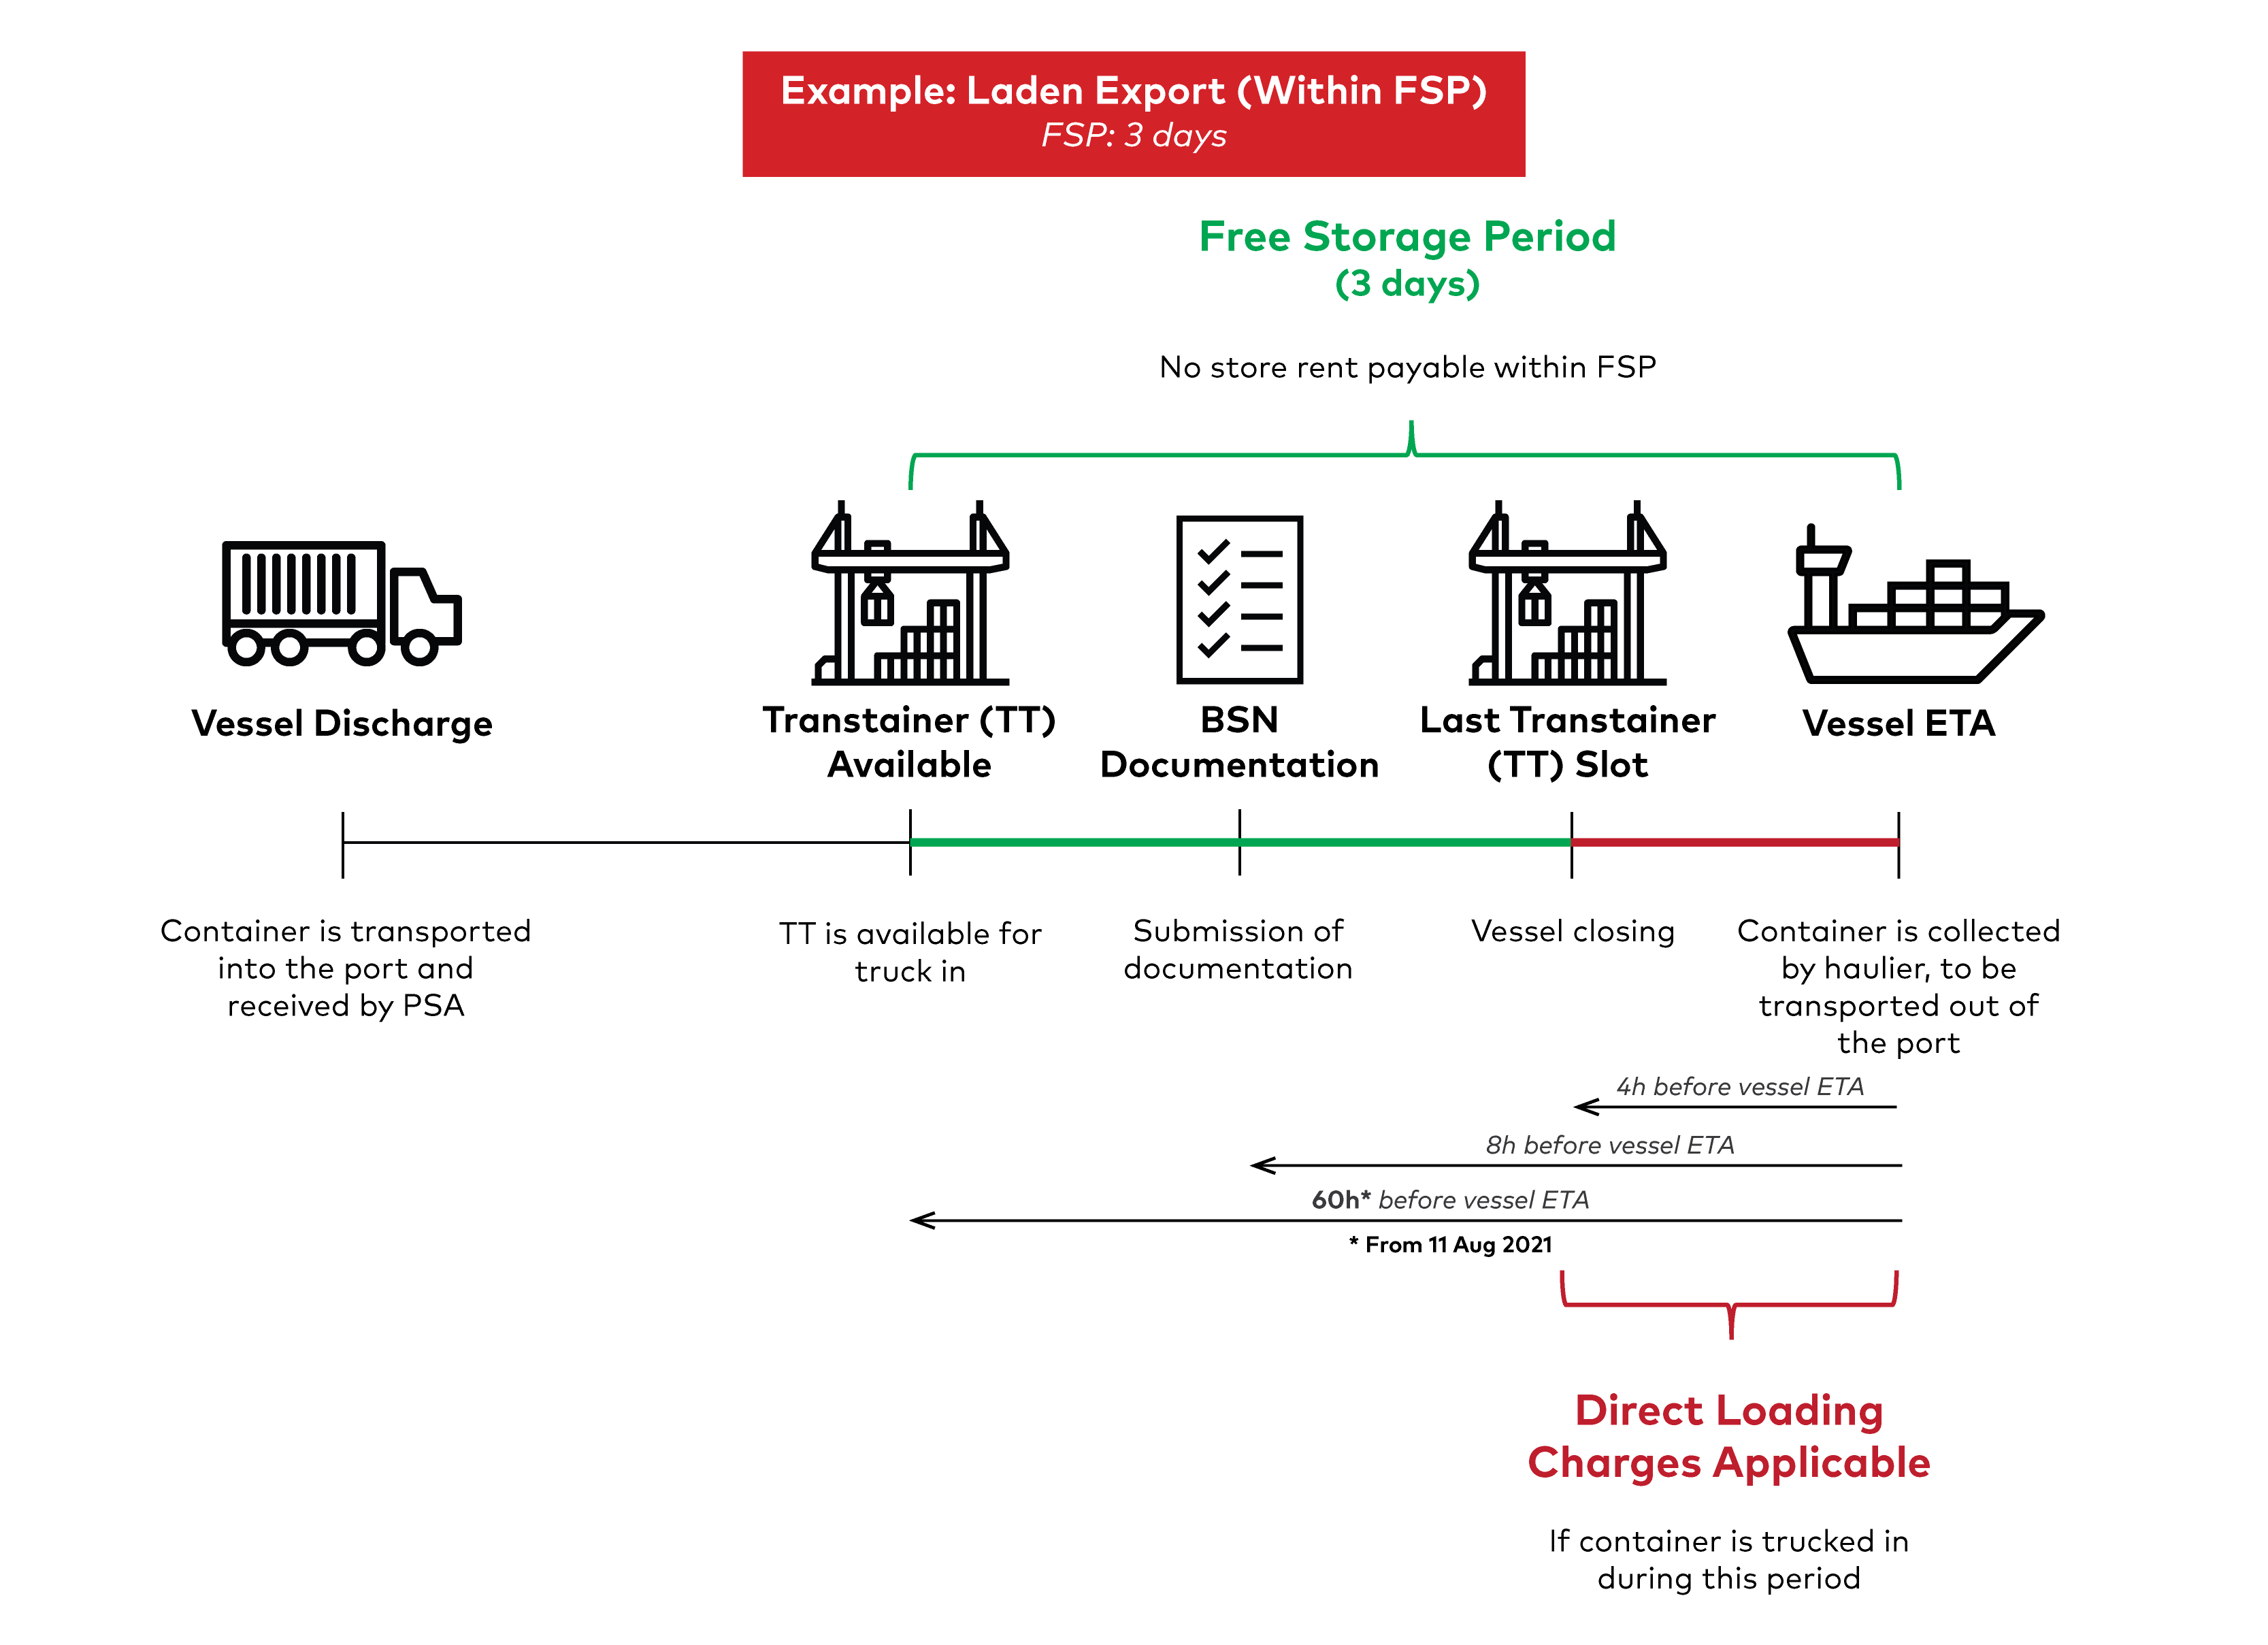 Store Rent Illustrations - Laden Export (Within FSP) - Updated Aug 2021